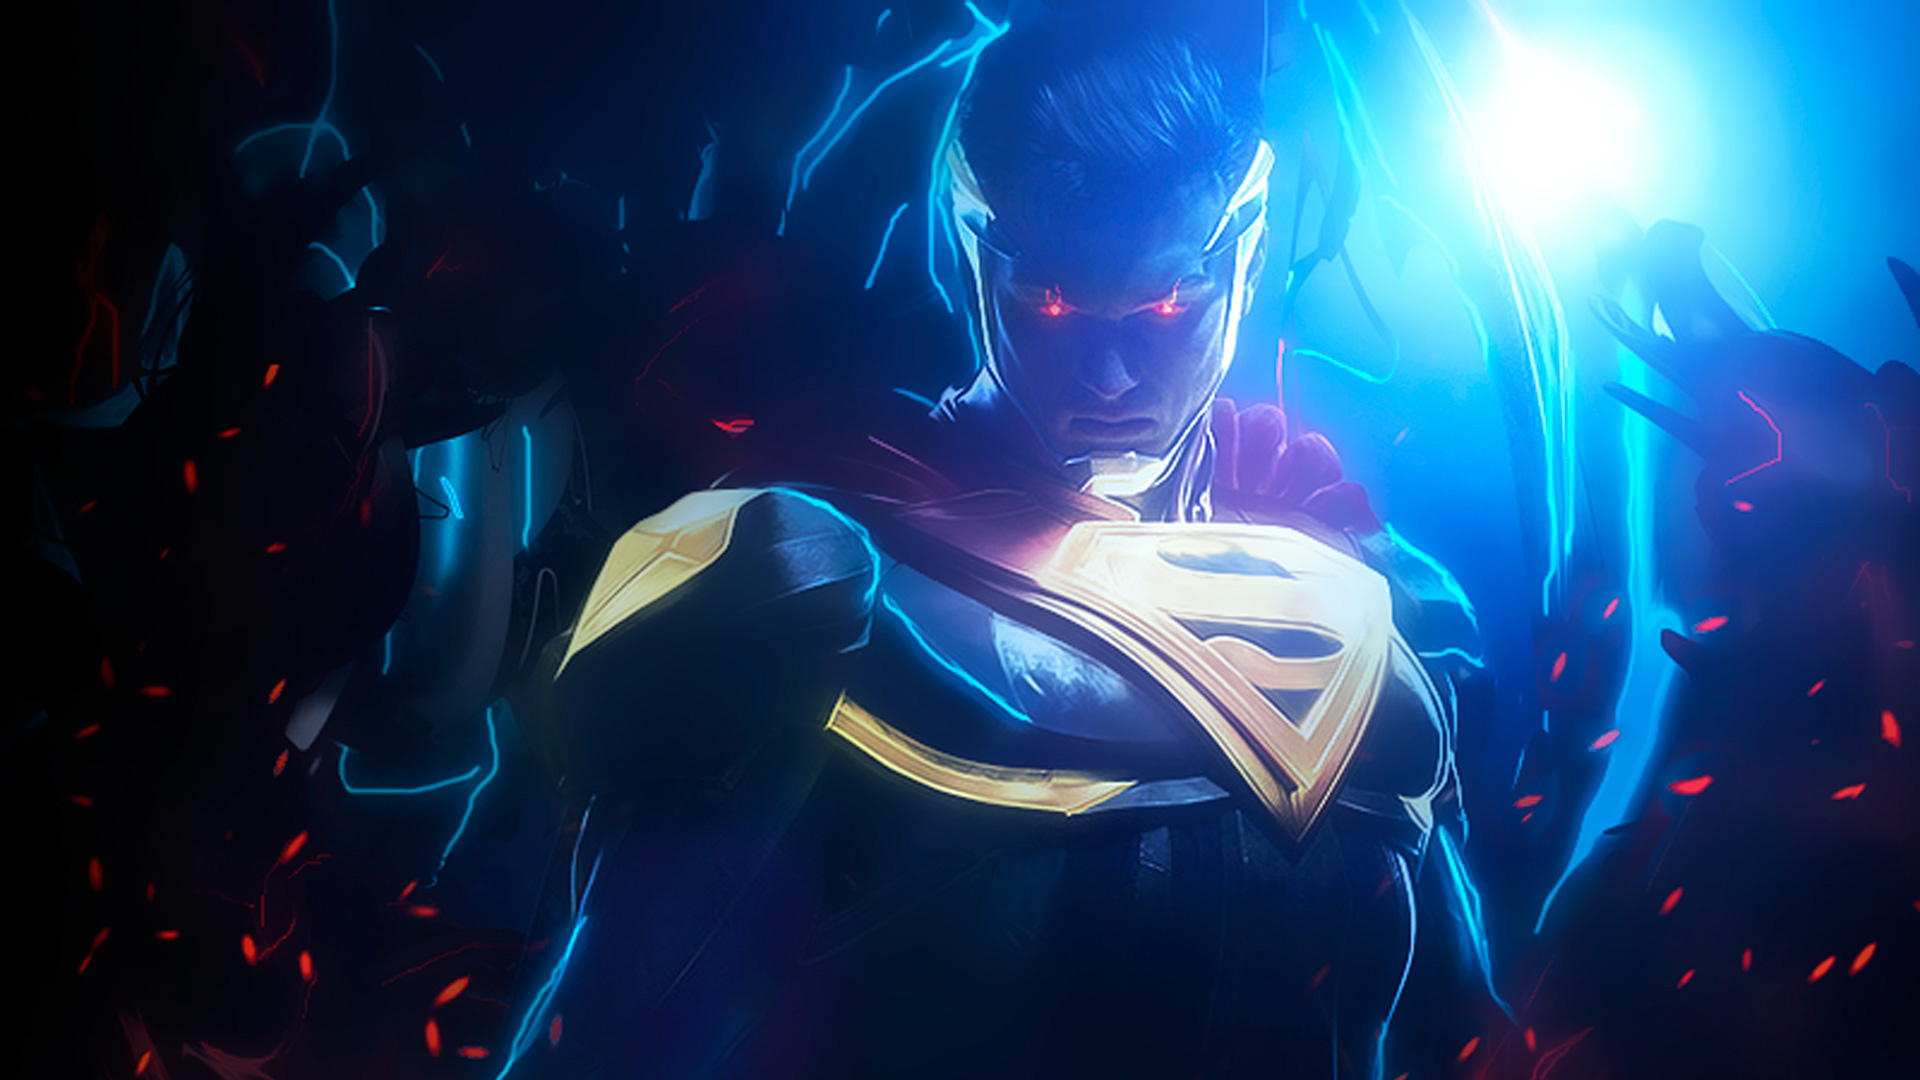 Injustice Wallpaper Hd For Iphone